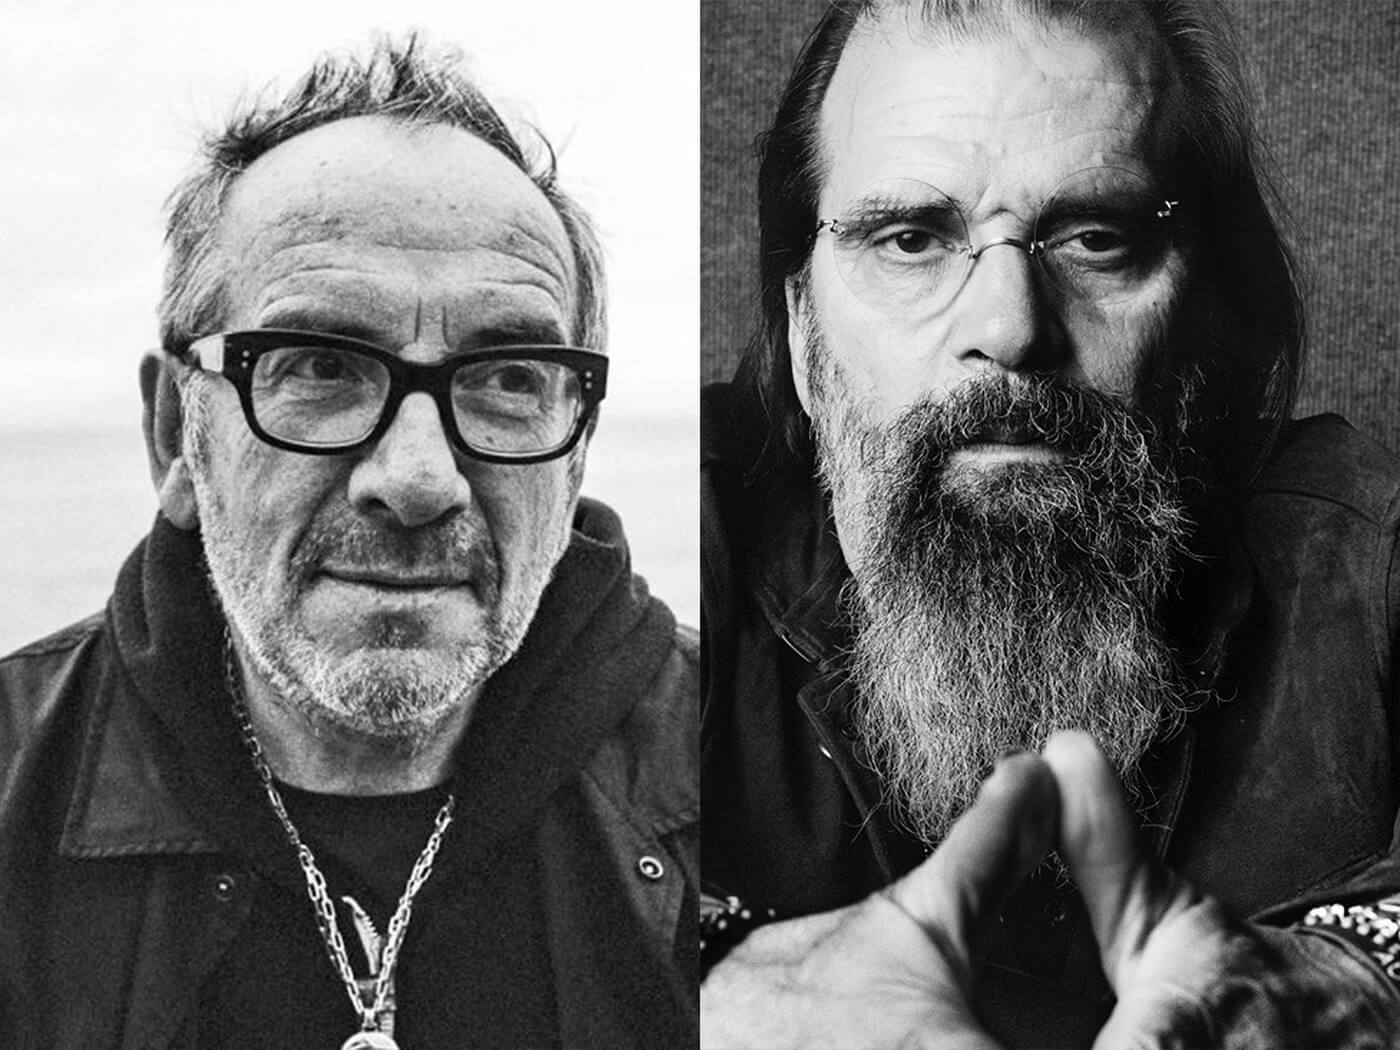 Elvis Costello and Steve Earle to play UK Americana Awards 2021